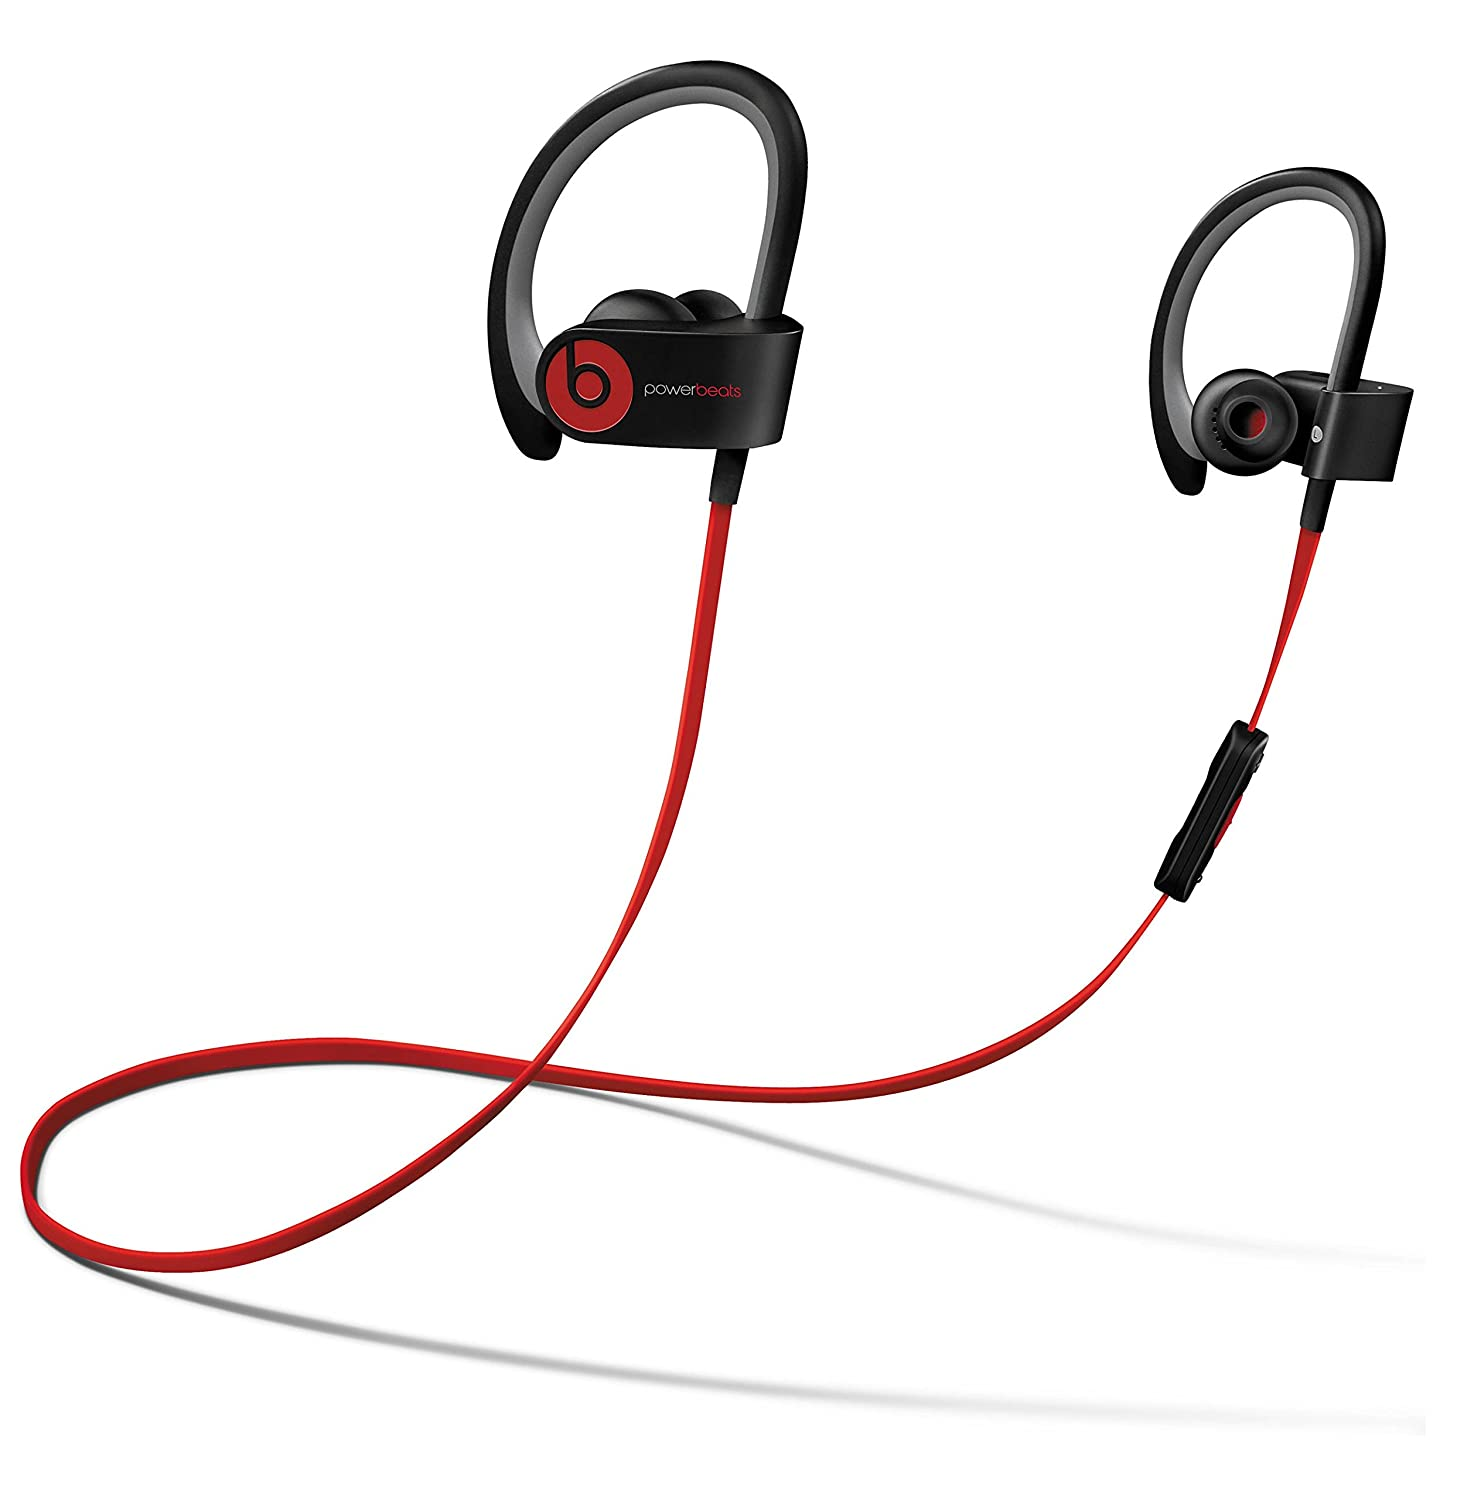 be05dc44bba Amazon.com: Beats by Dr dre Powerbeats2 Wireless In-Ear Bluetooth Headphone  with Mic - Black (Renewed): Home Audio & Theater